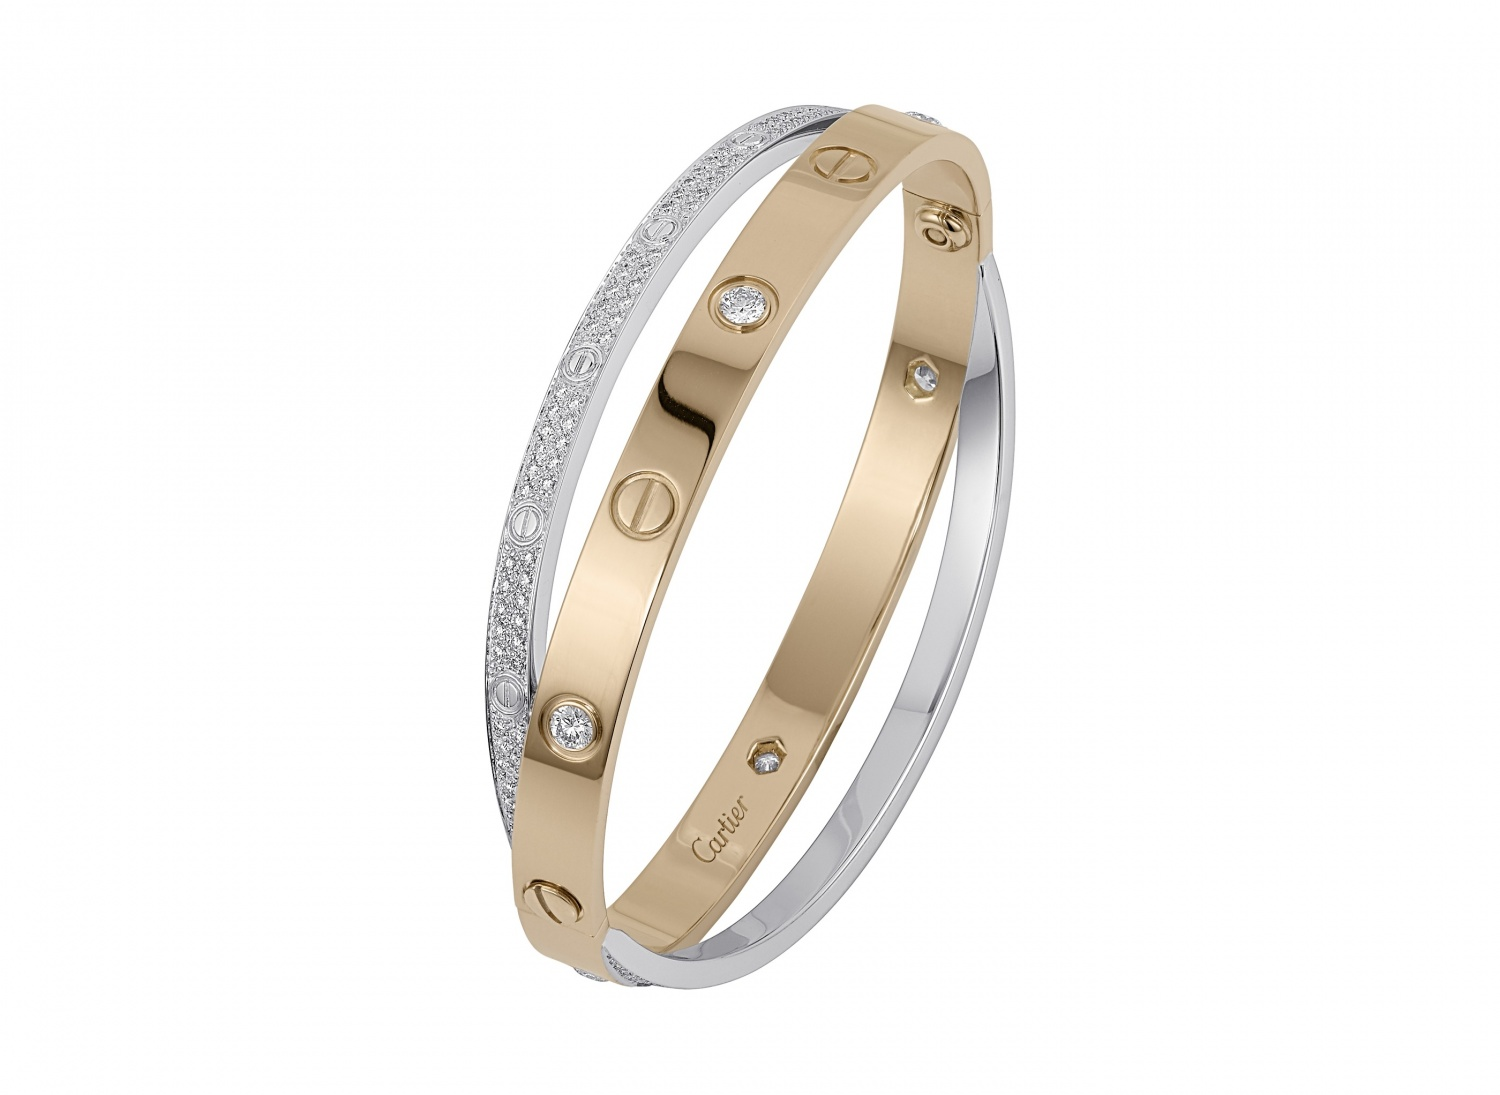 Cartier-Double-ring-from-the-Love-collection-White-gold-and-pink-gold-set-with-6-diamonds